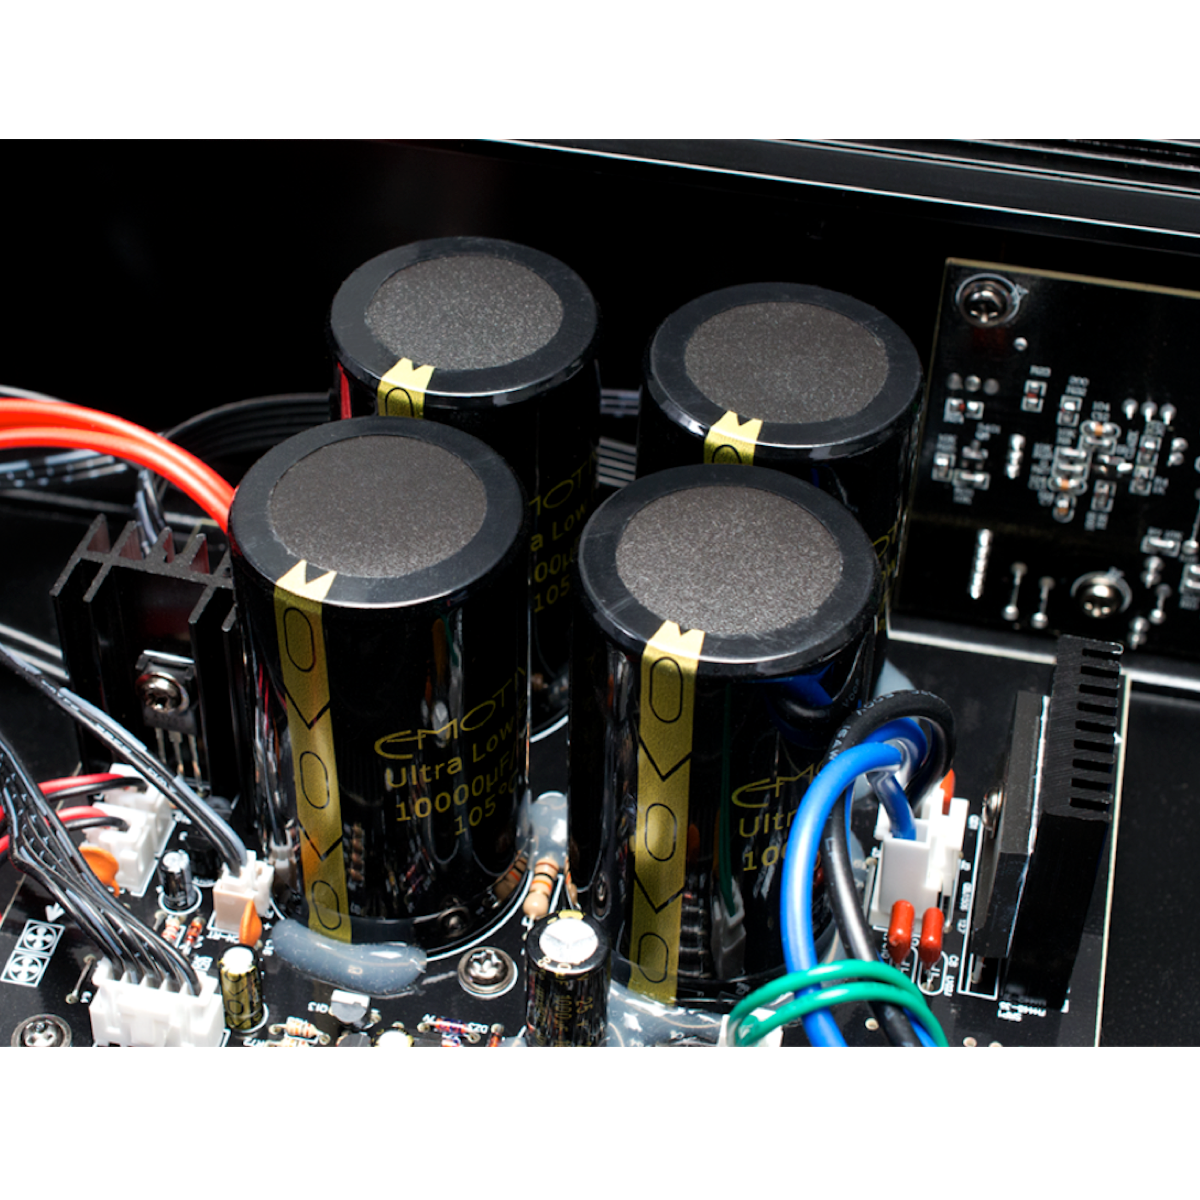 Emotiva A-300 - Stereo Power Amplifier - AVStore.in